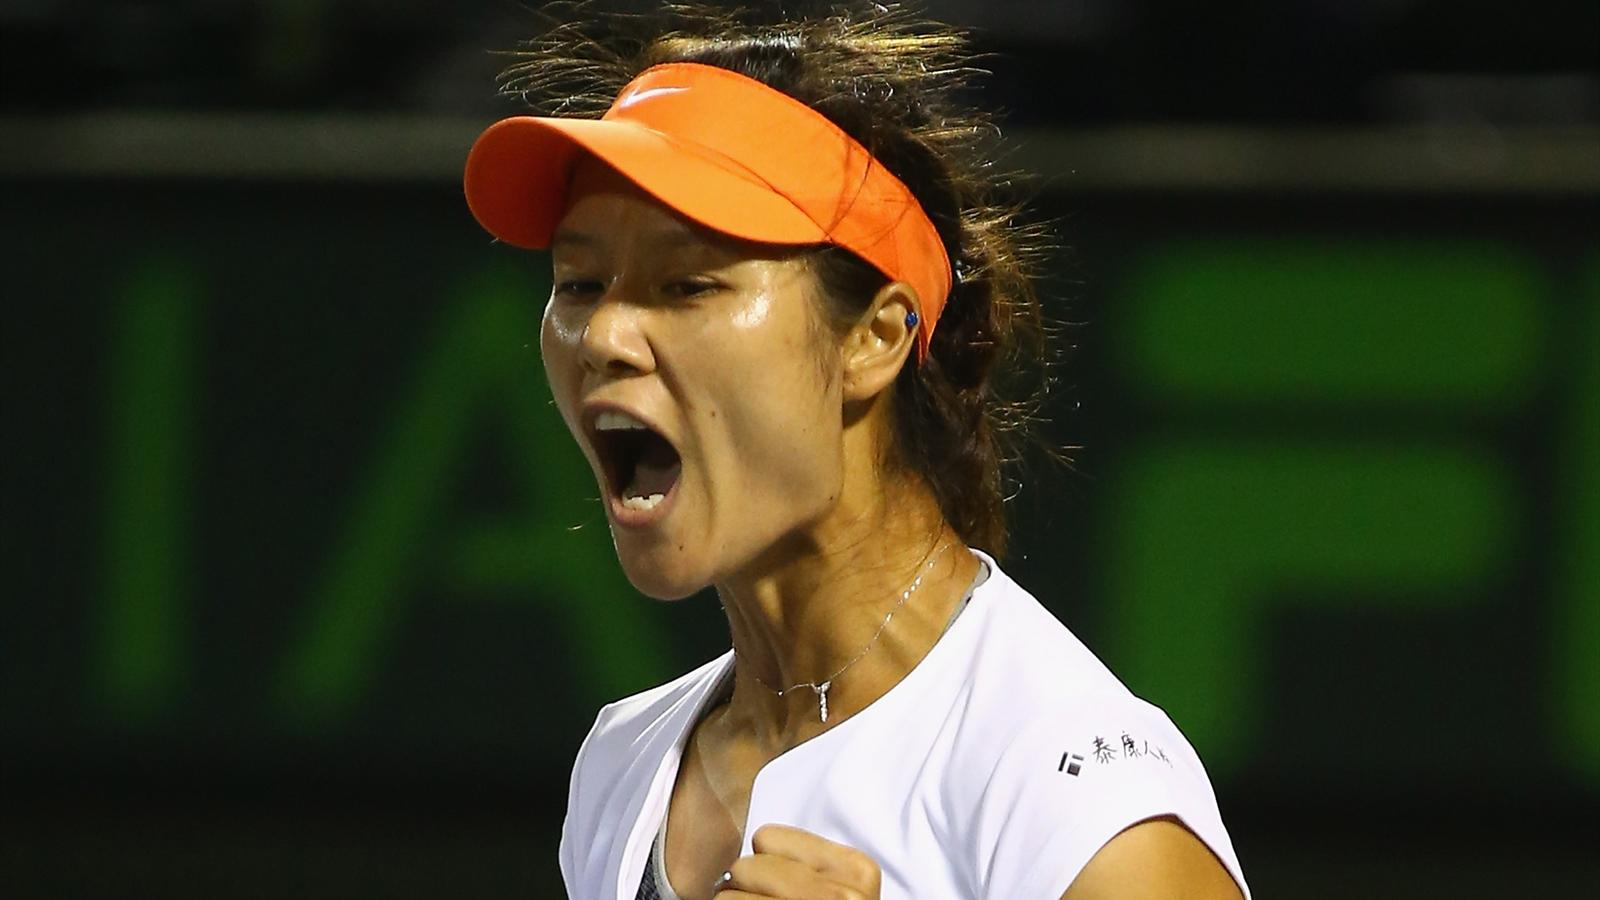 Li Na of China celebrates winning the first set against Dominika Cibulkova of Slovakia at the Sony Open in Miami (AFP)